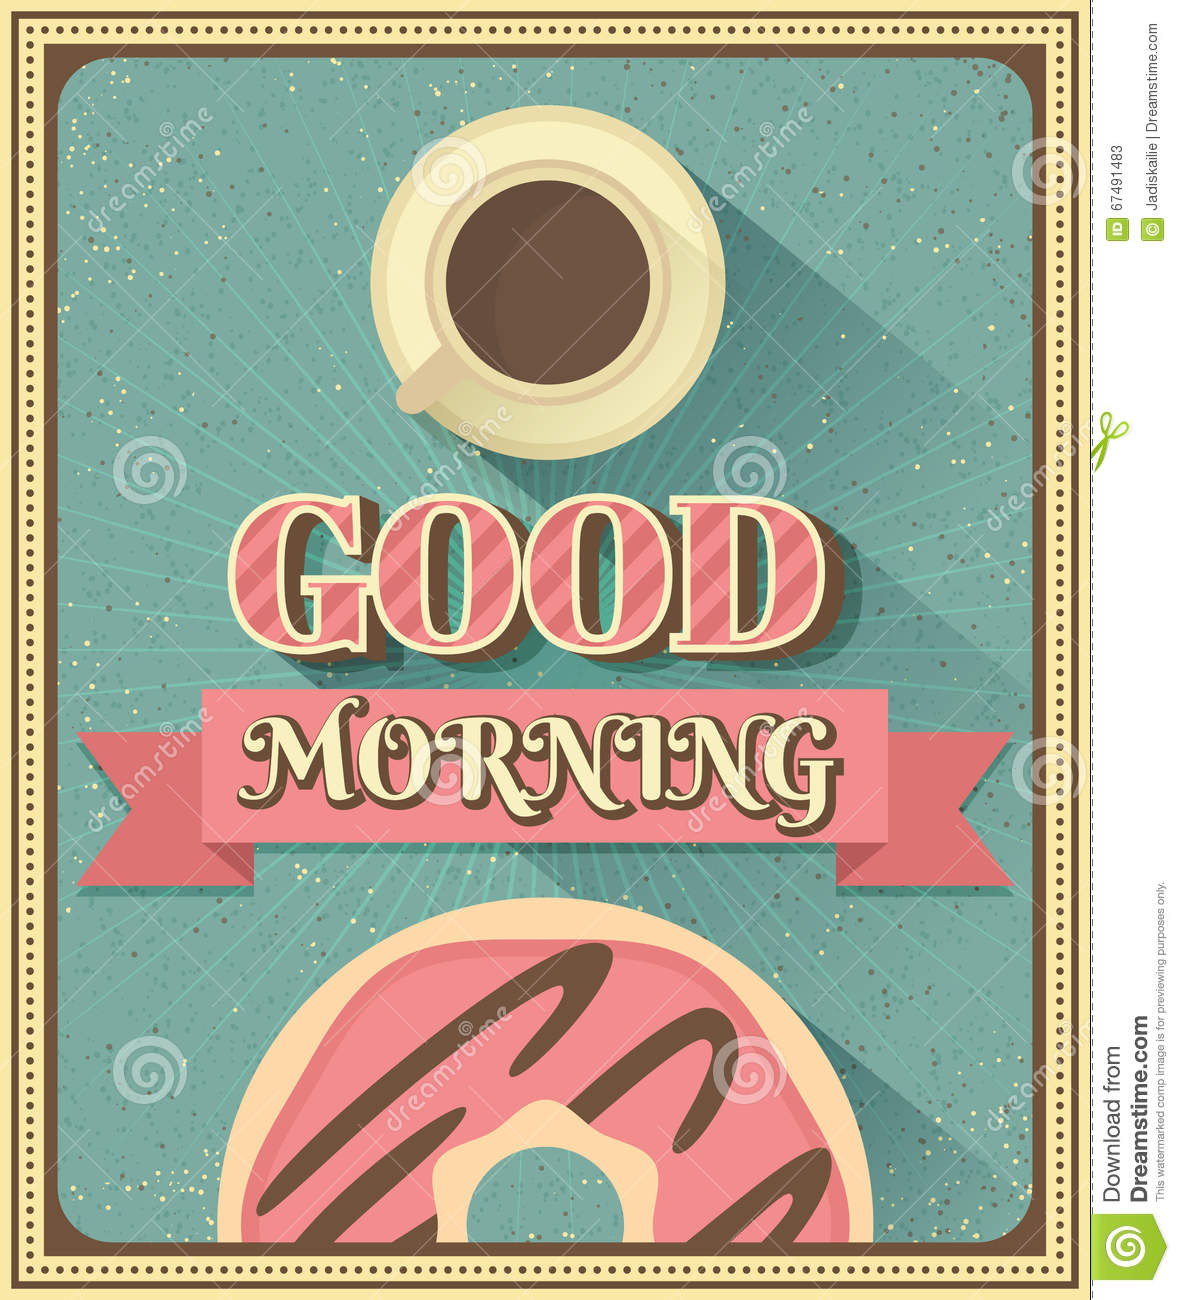 Good Morning Vintage Photos : Good morning with coffee and donut stock vector image